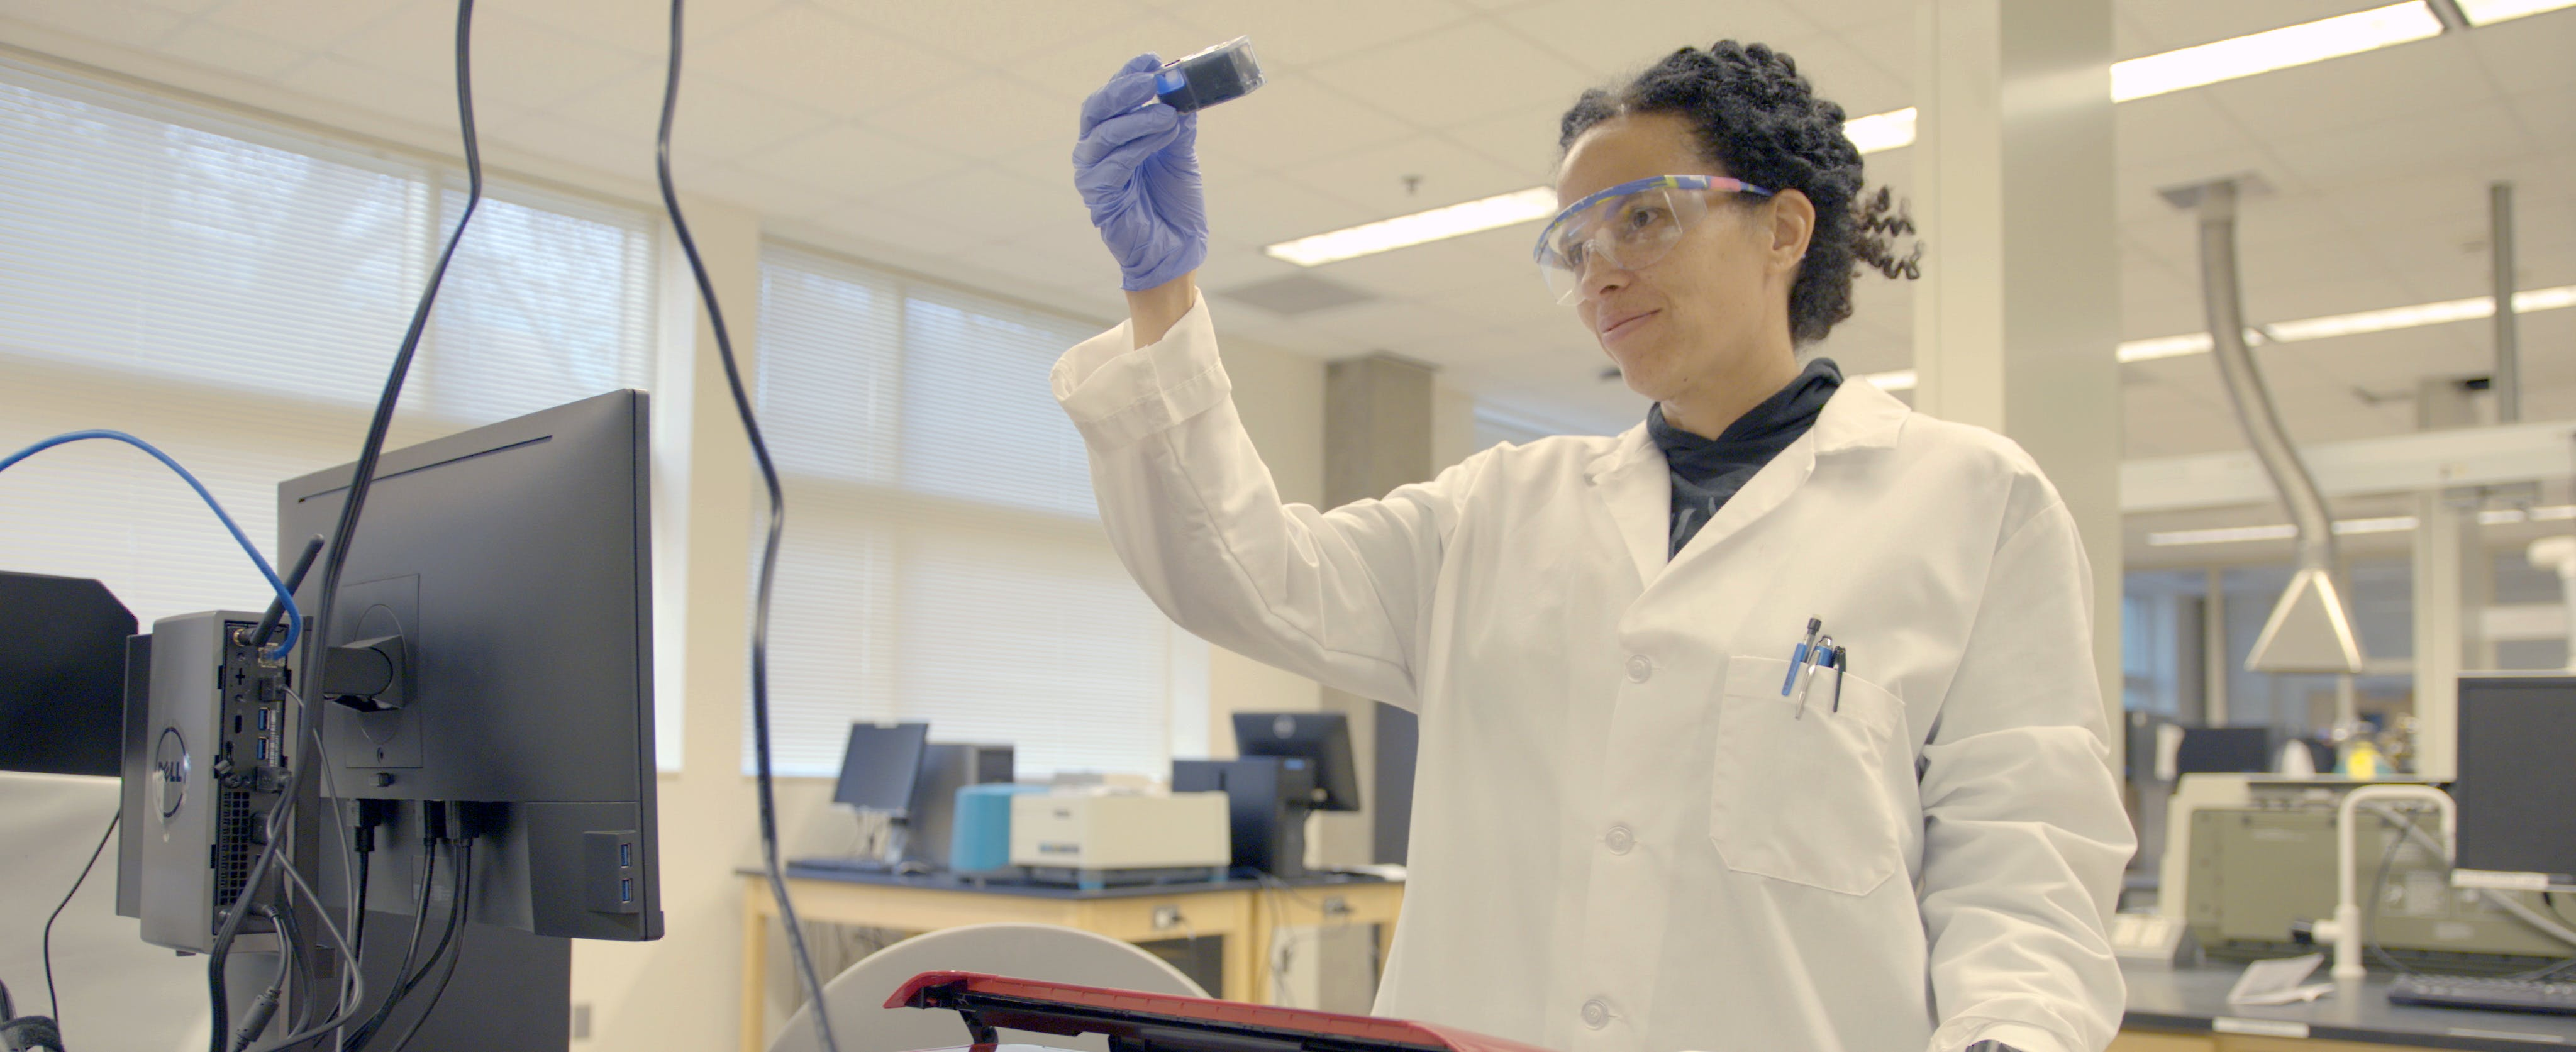 Chemist Raychelle Burks examines a sample while working in a lab